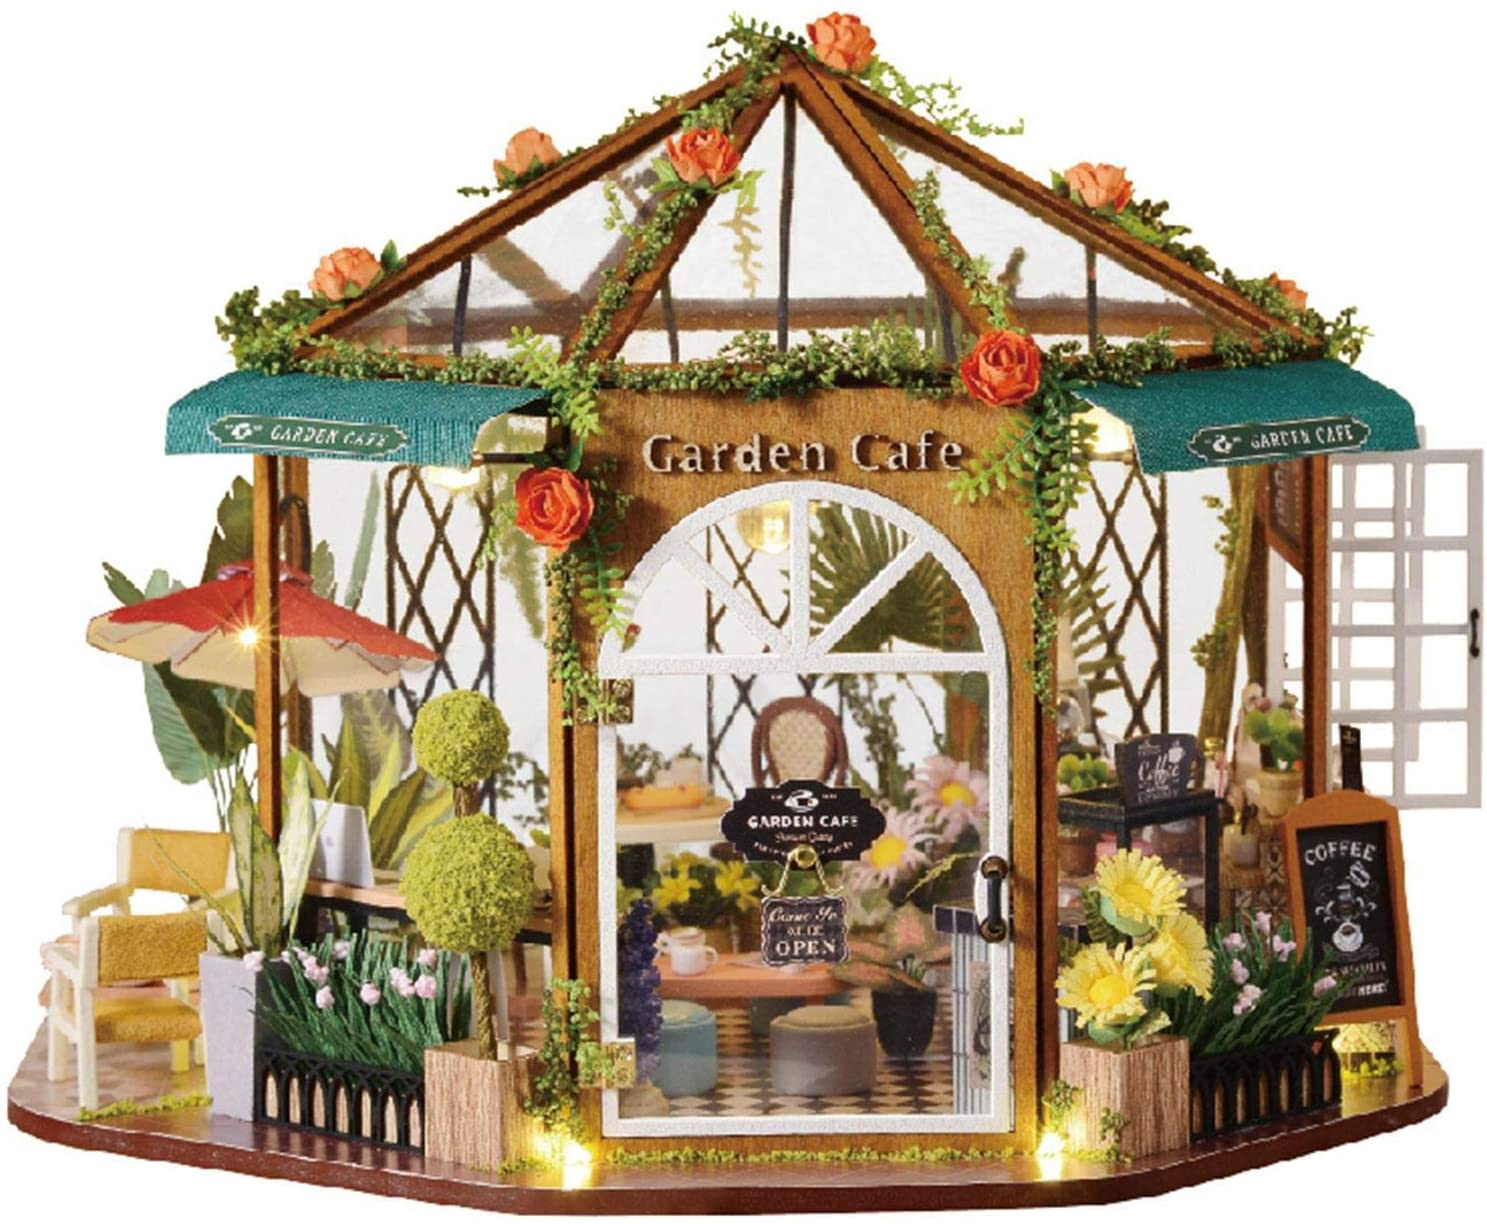 shuaiyin Dollhouse Miniature with Furniture, DIY Wooden Dollhouse Kit, Dust Proof Cover and LED Light,1:24 Scale Creative Room, Model Creative Gifts